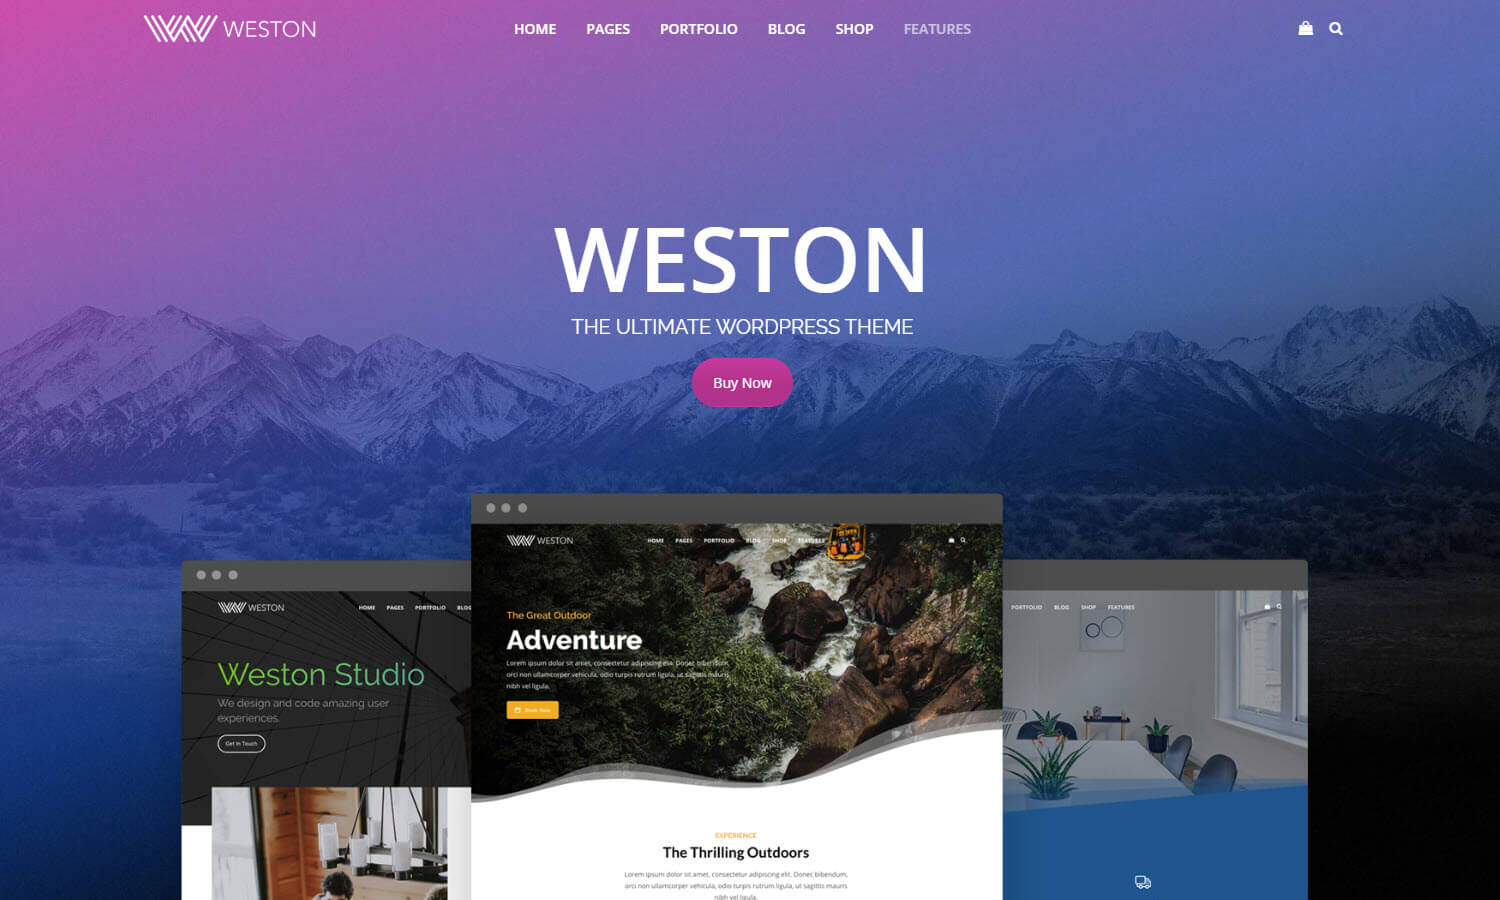 Weston screenshot